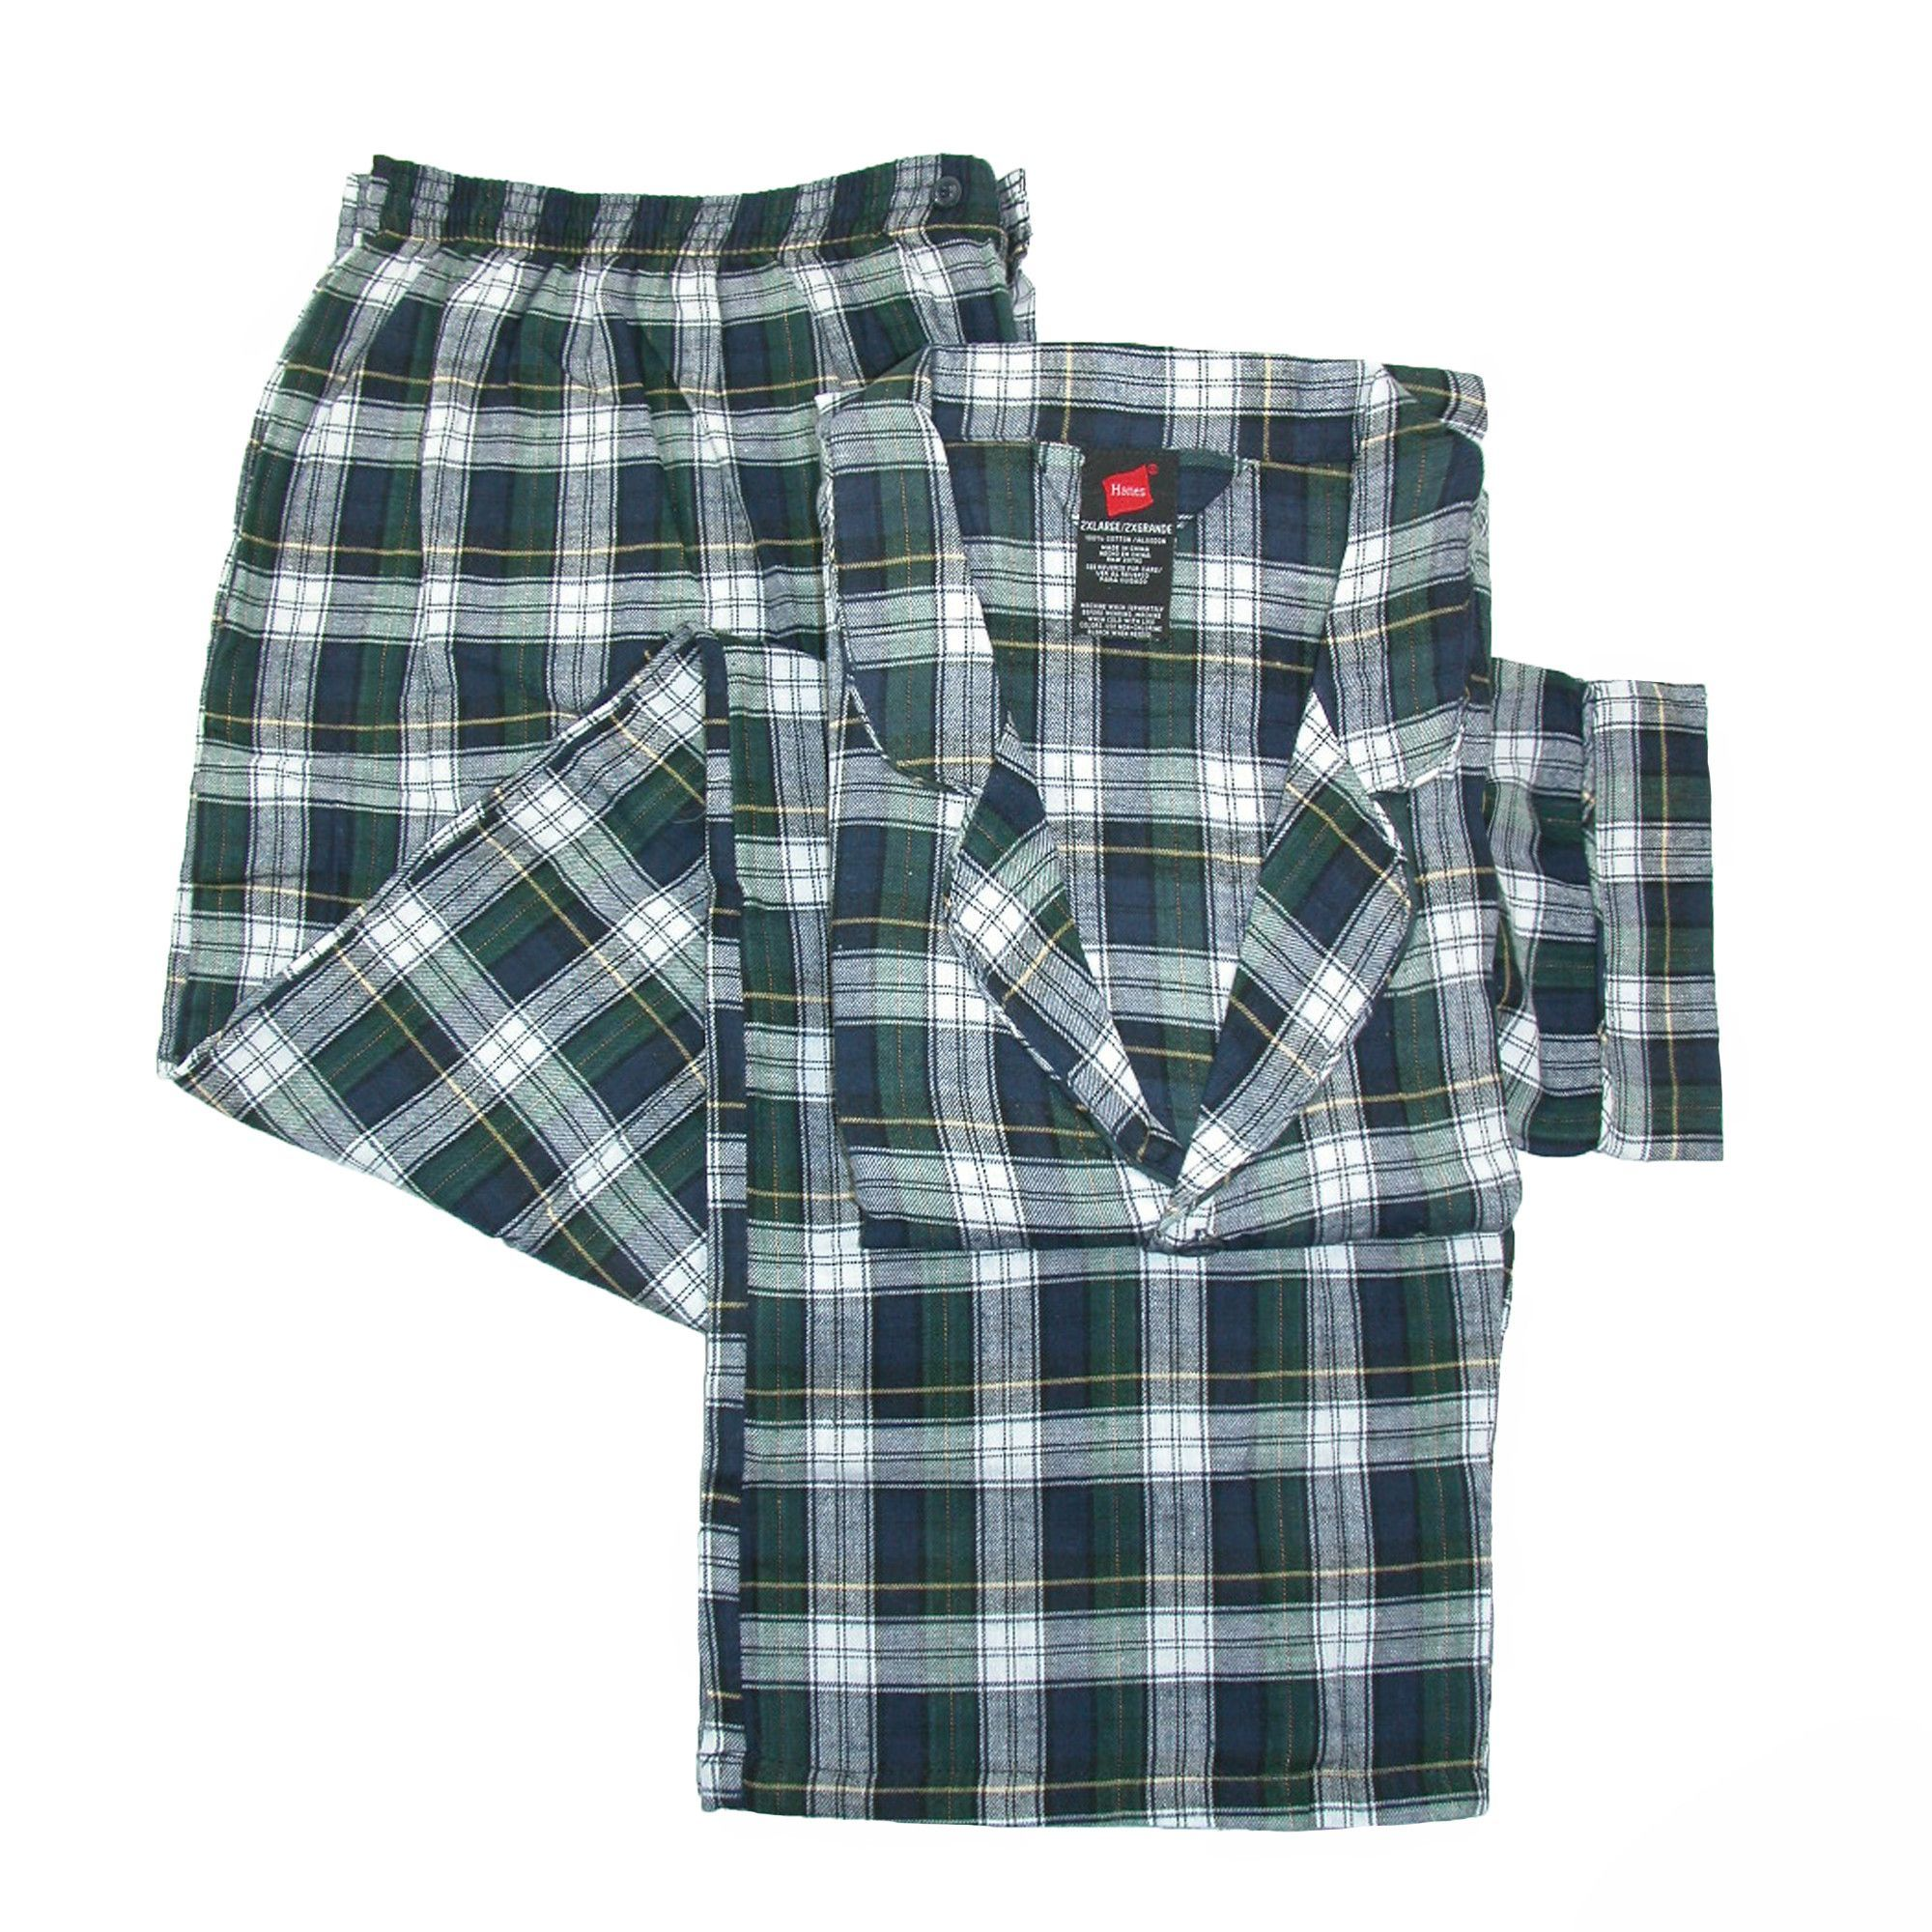 Red flannel pajama pants  Hanes Menus Cotton Flannel Pajama Set  Flannel pyjamas Pyjama sets